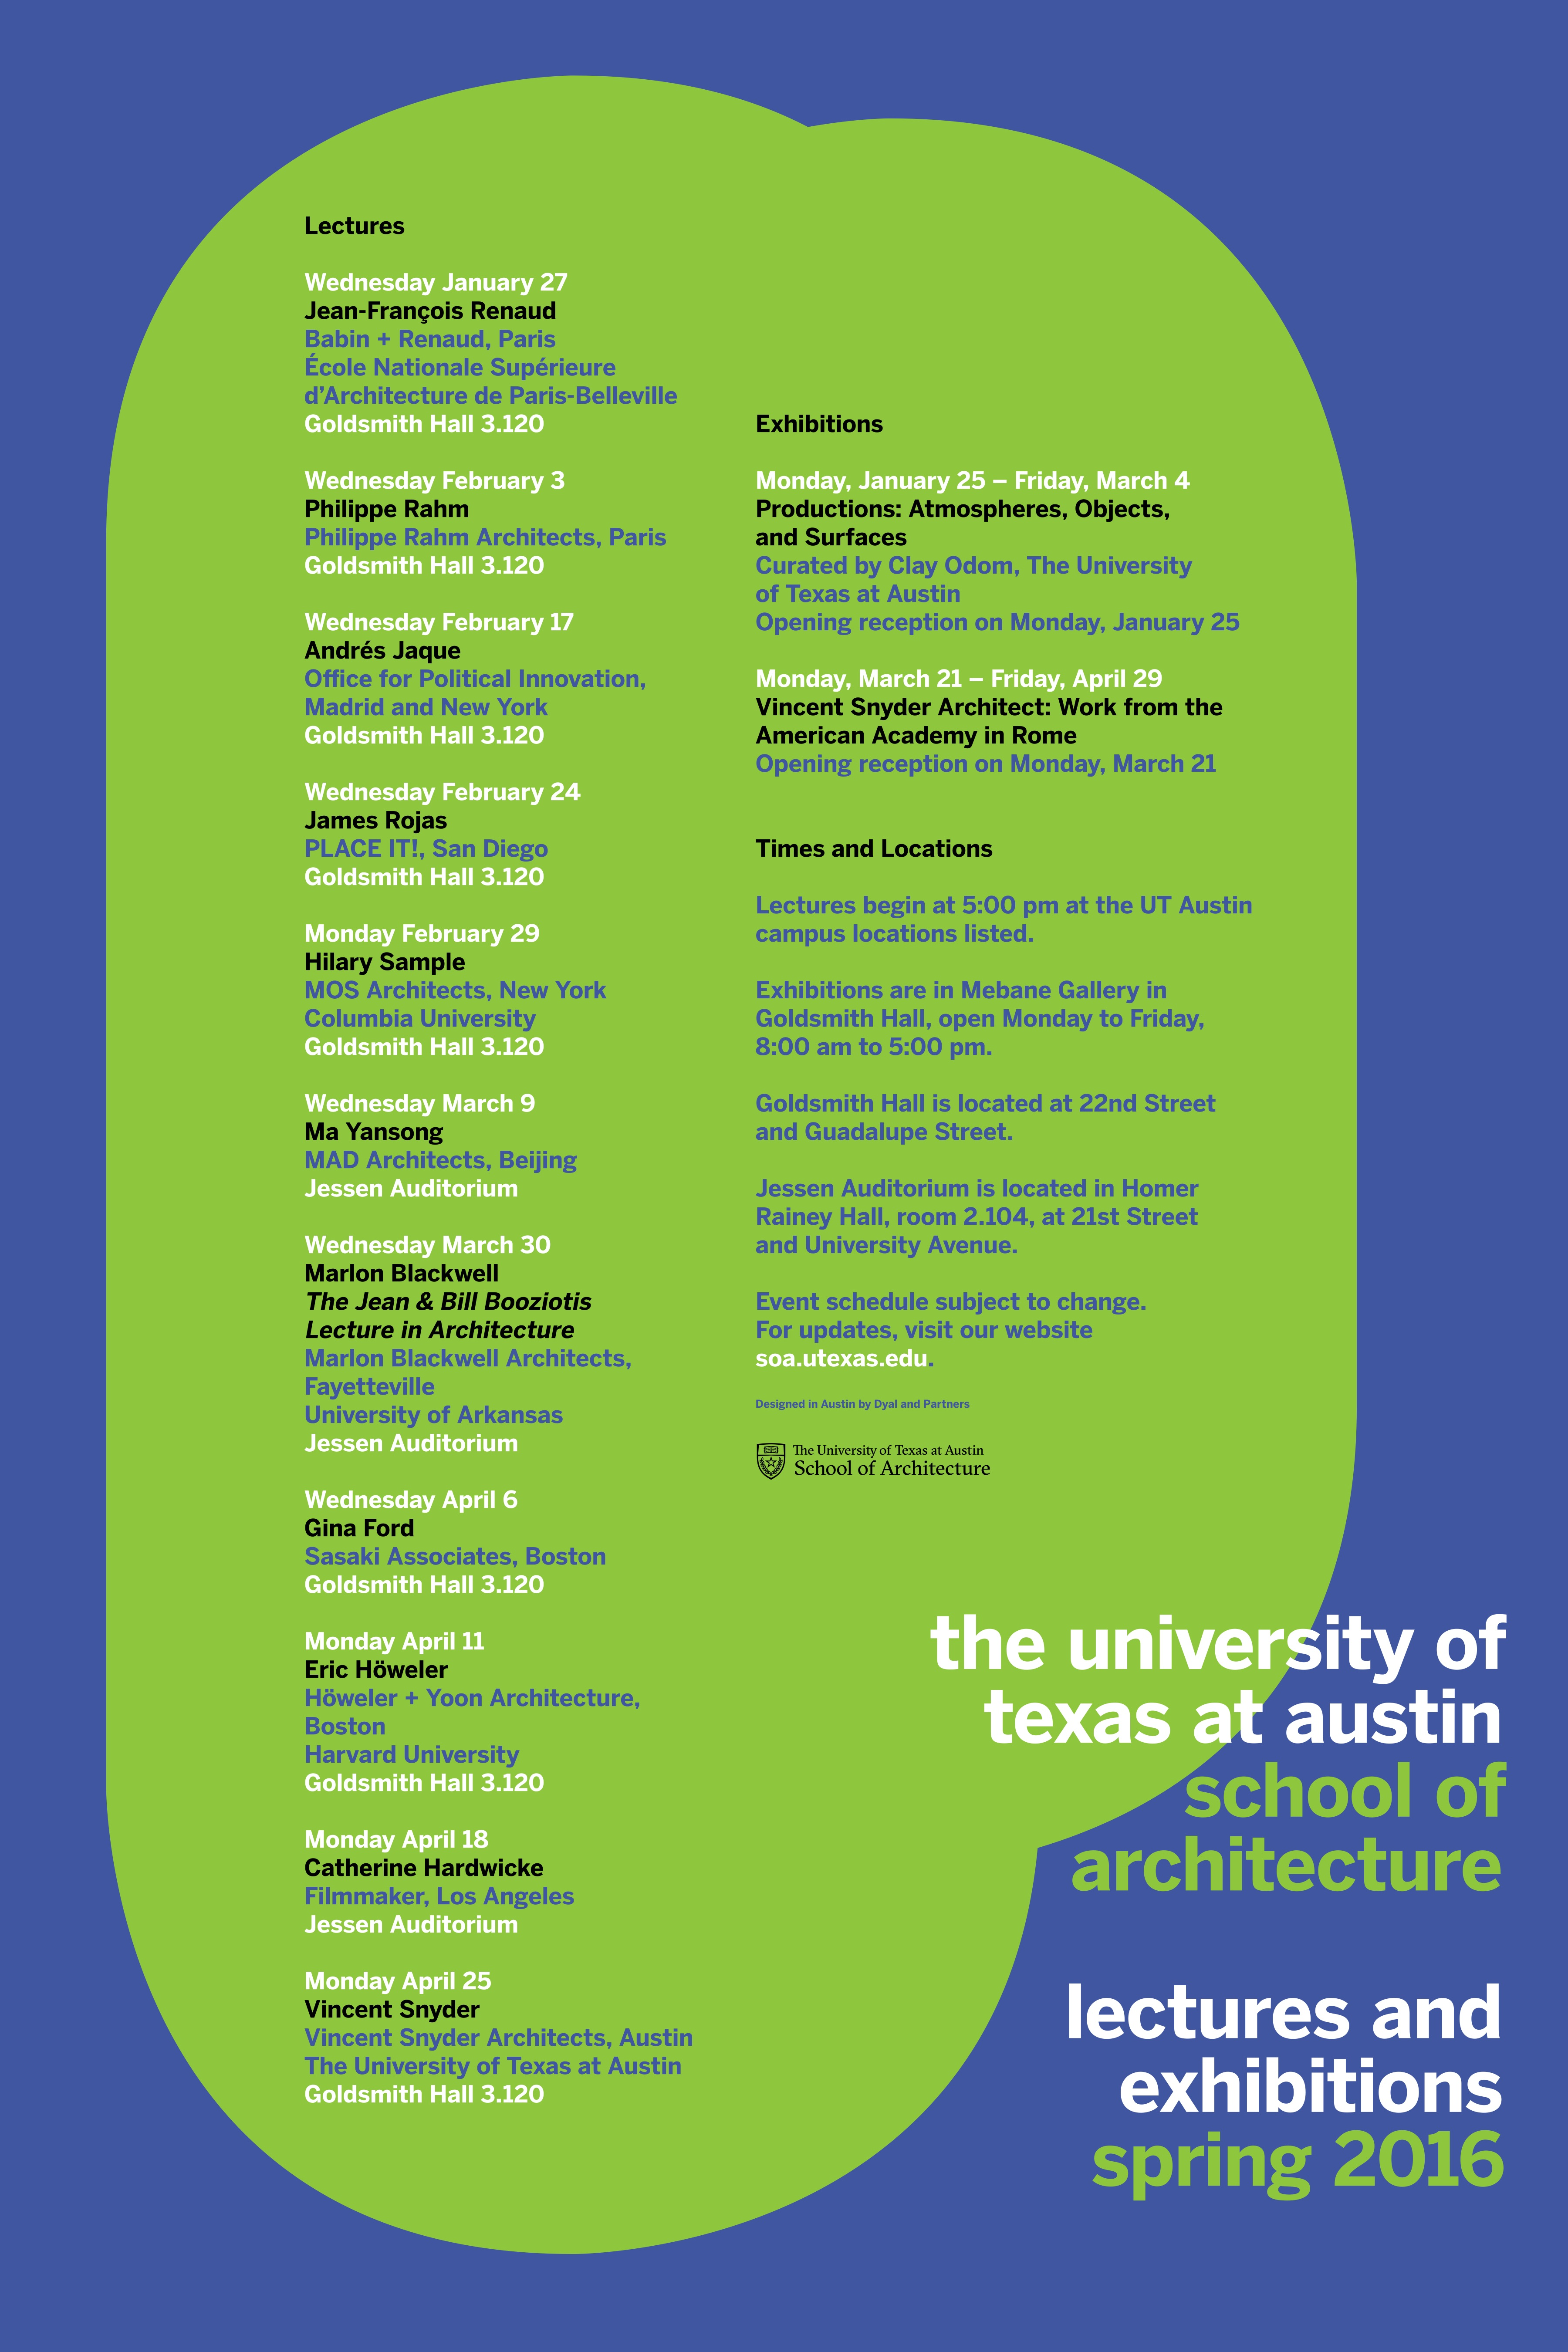 poster listing details for all lectures and exhibitions in Spring 2016  @UTSOA